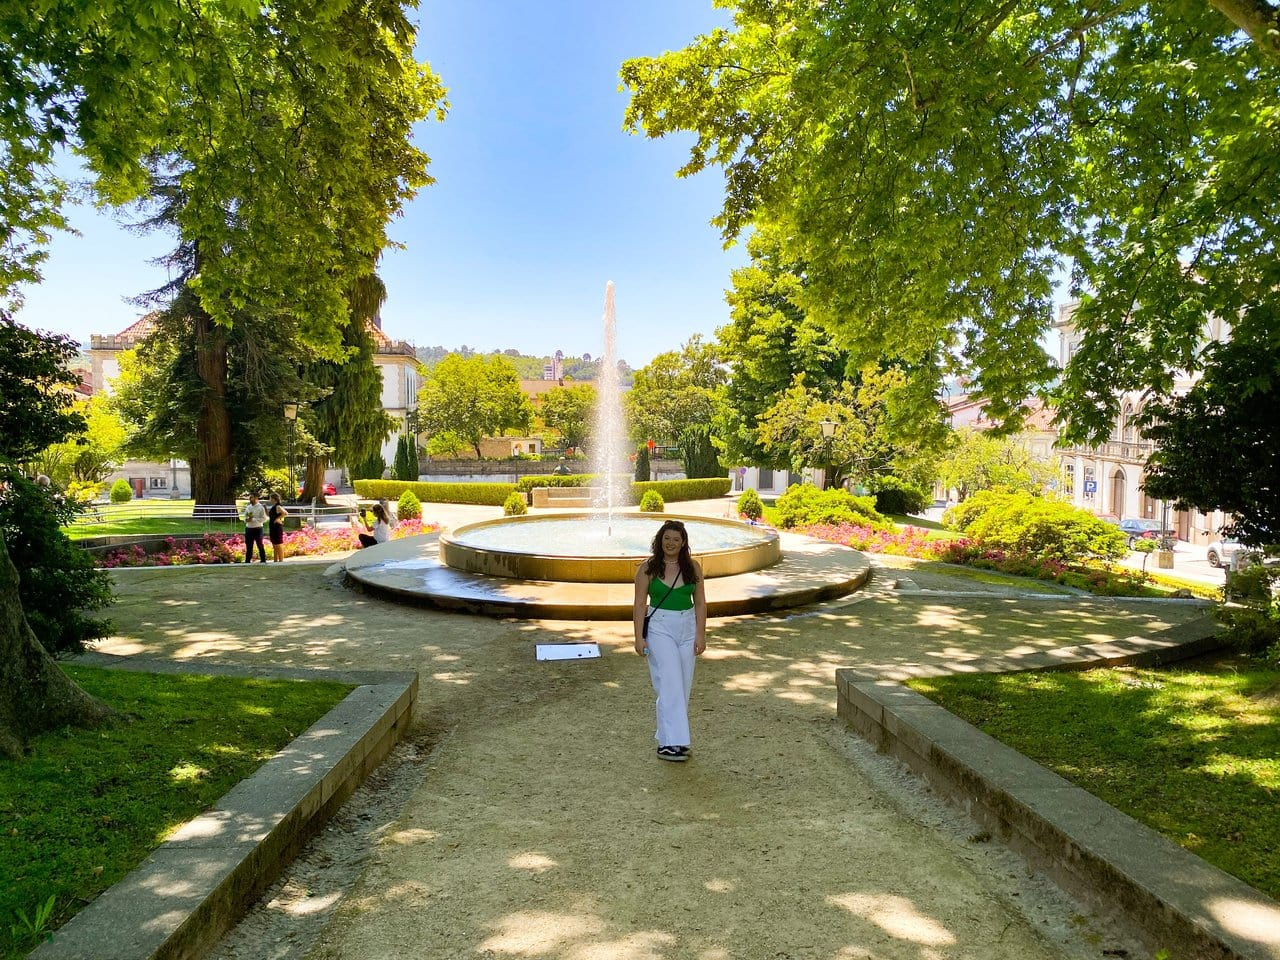 Visiting Guimarães on a day trip from Porto